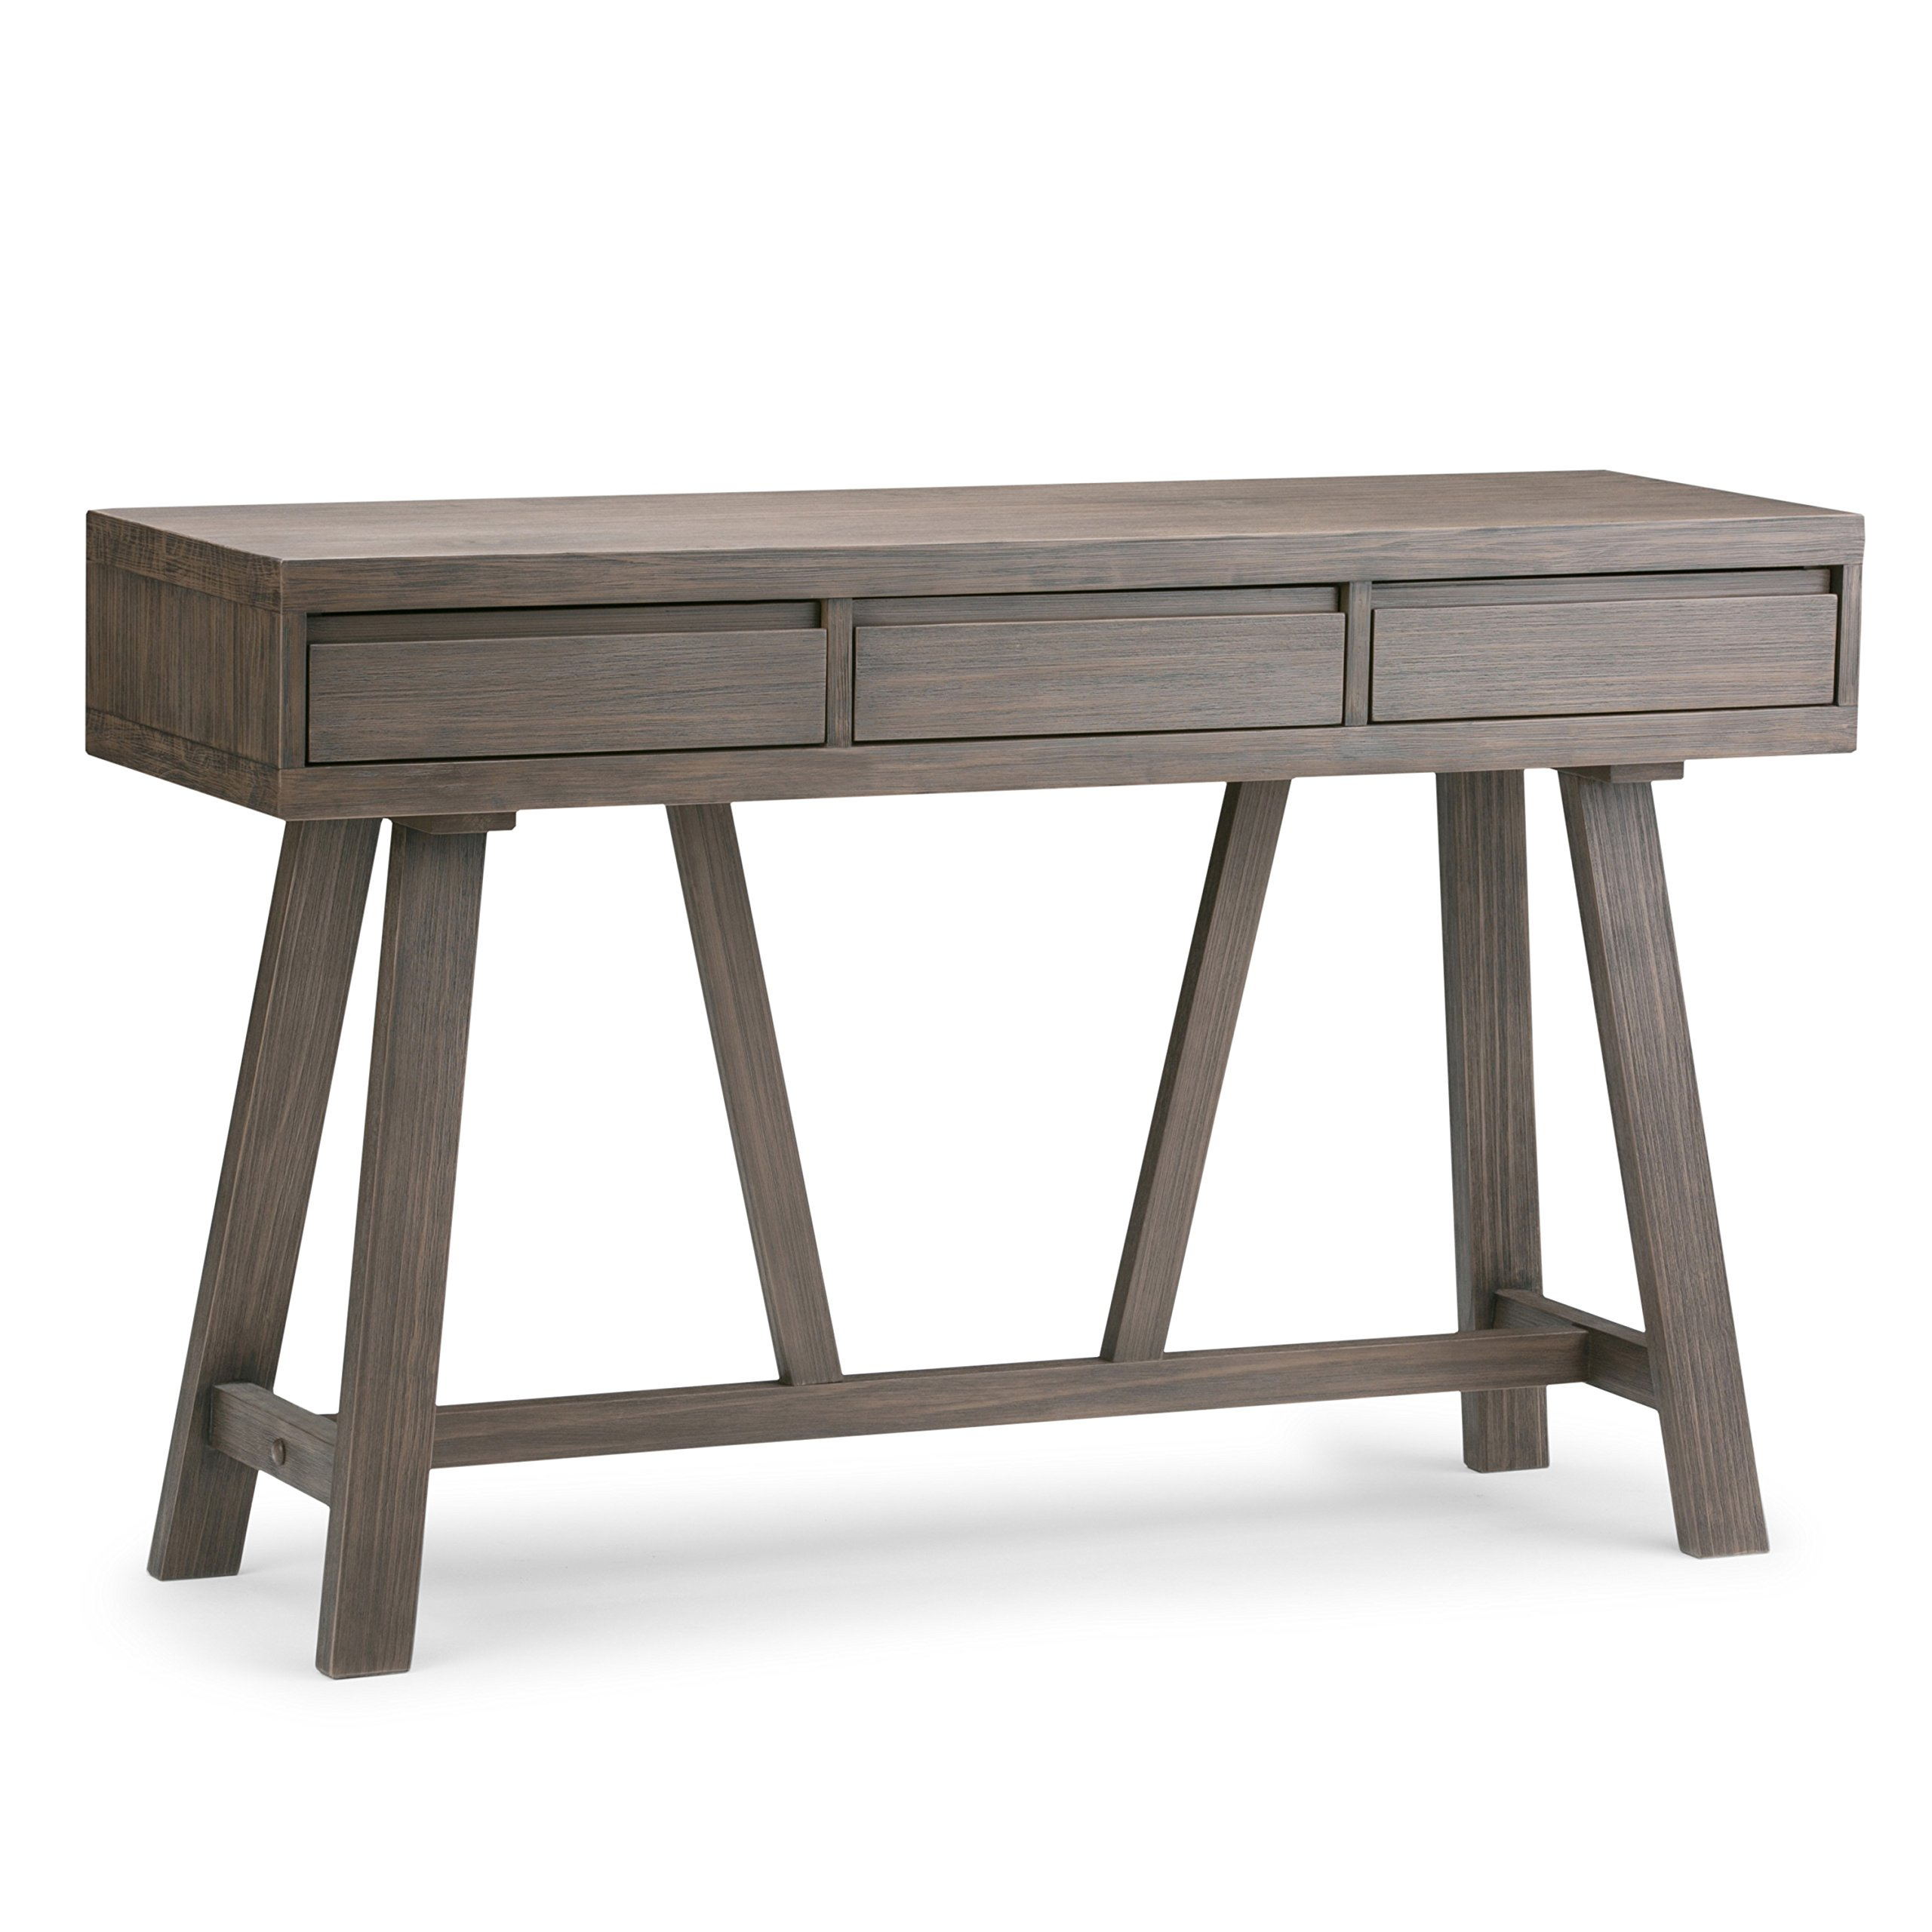 Simpli Home 3AXCDLN-04 Dylan Solid Wood 48 inch Wide Modern Industrial Hallway Console Table in Driftwood by Simpli Home